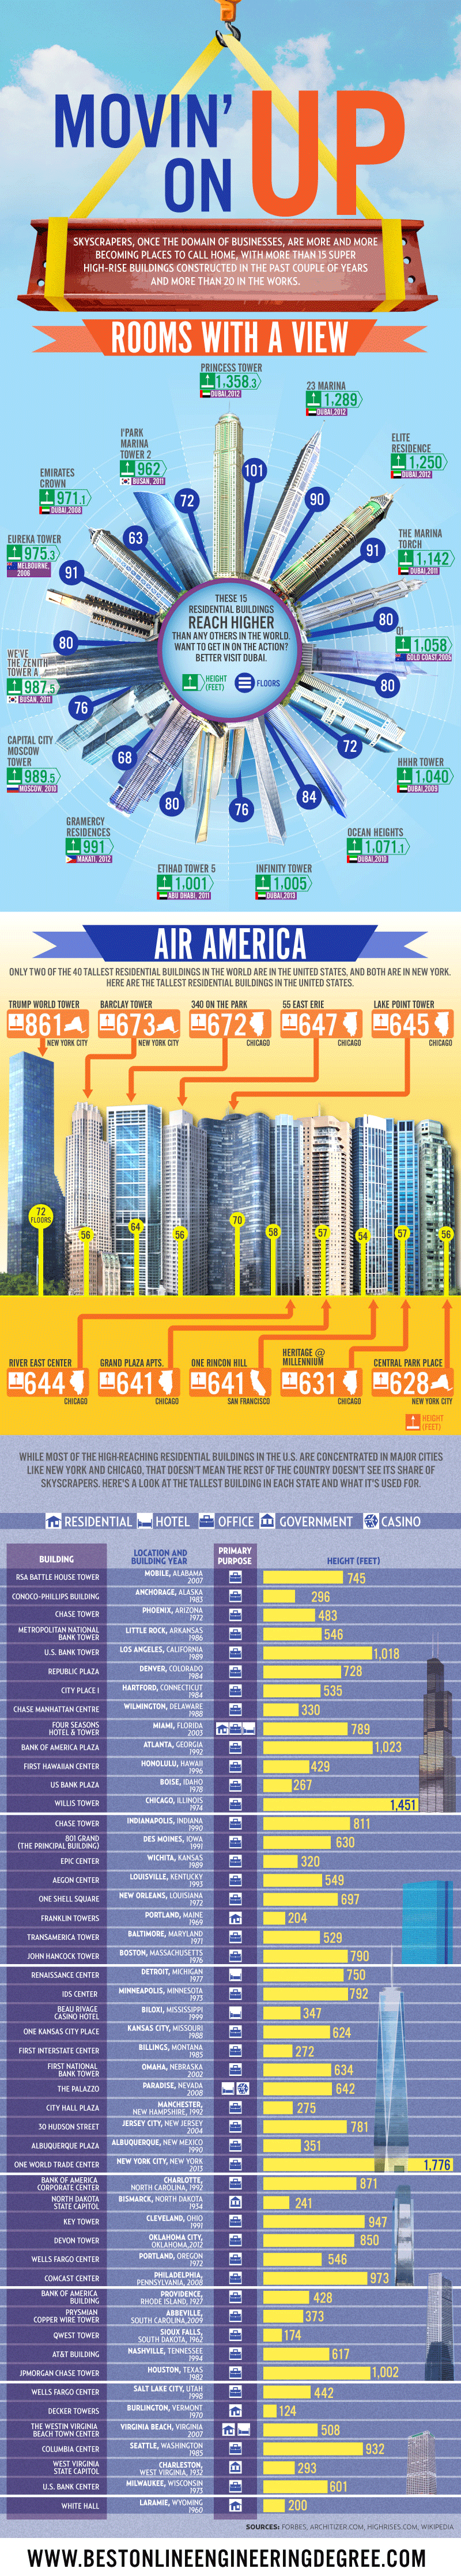 tallest-buildings